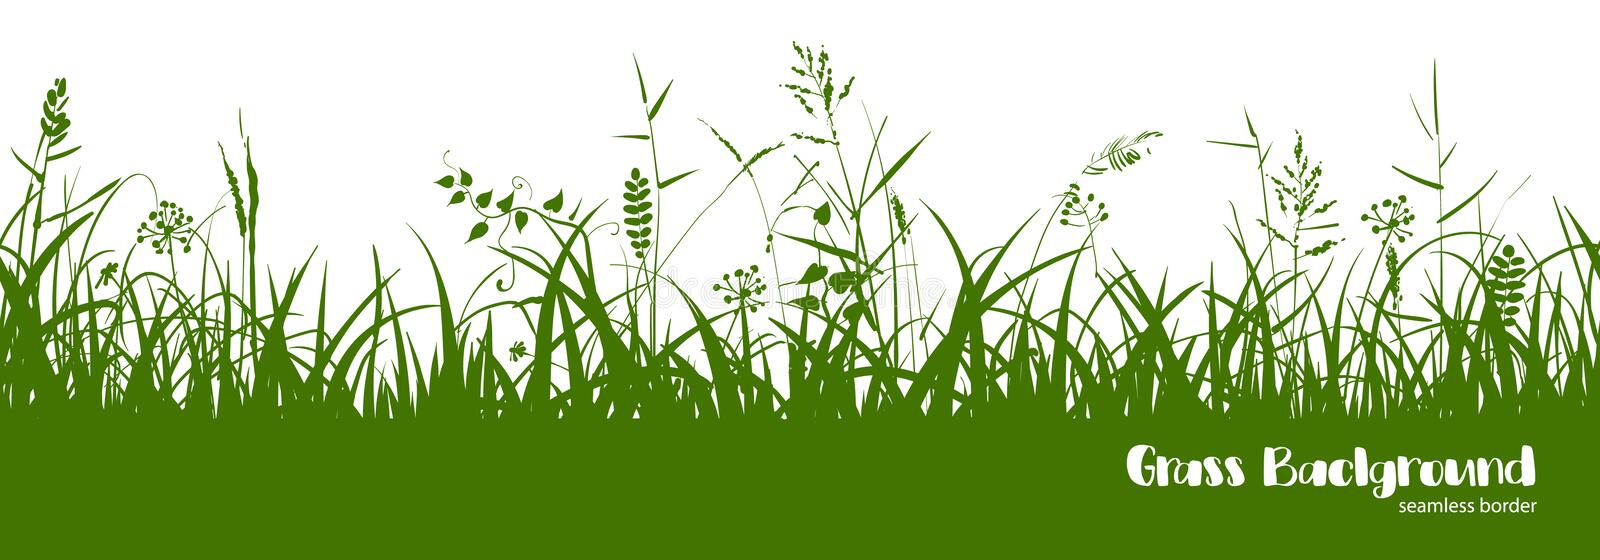 Silhouettes of green grass, spikes and herbs. Seamless border. Silhouettes of green grass, spikes and herbs isolated on white background. Seamless border. Hand royalty free illustration